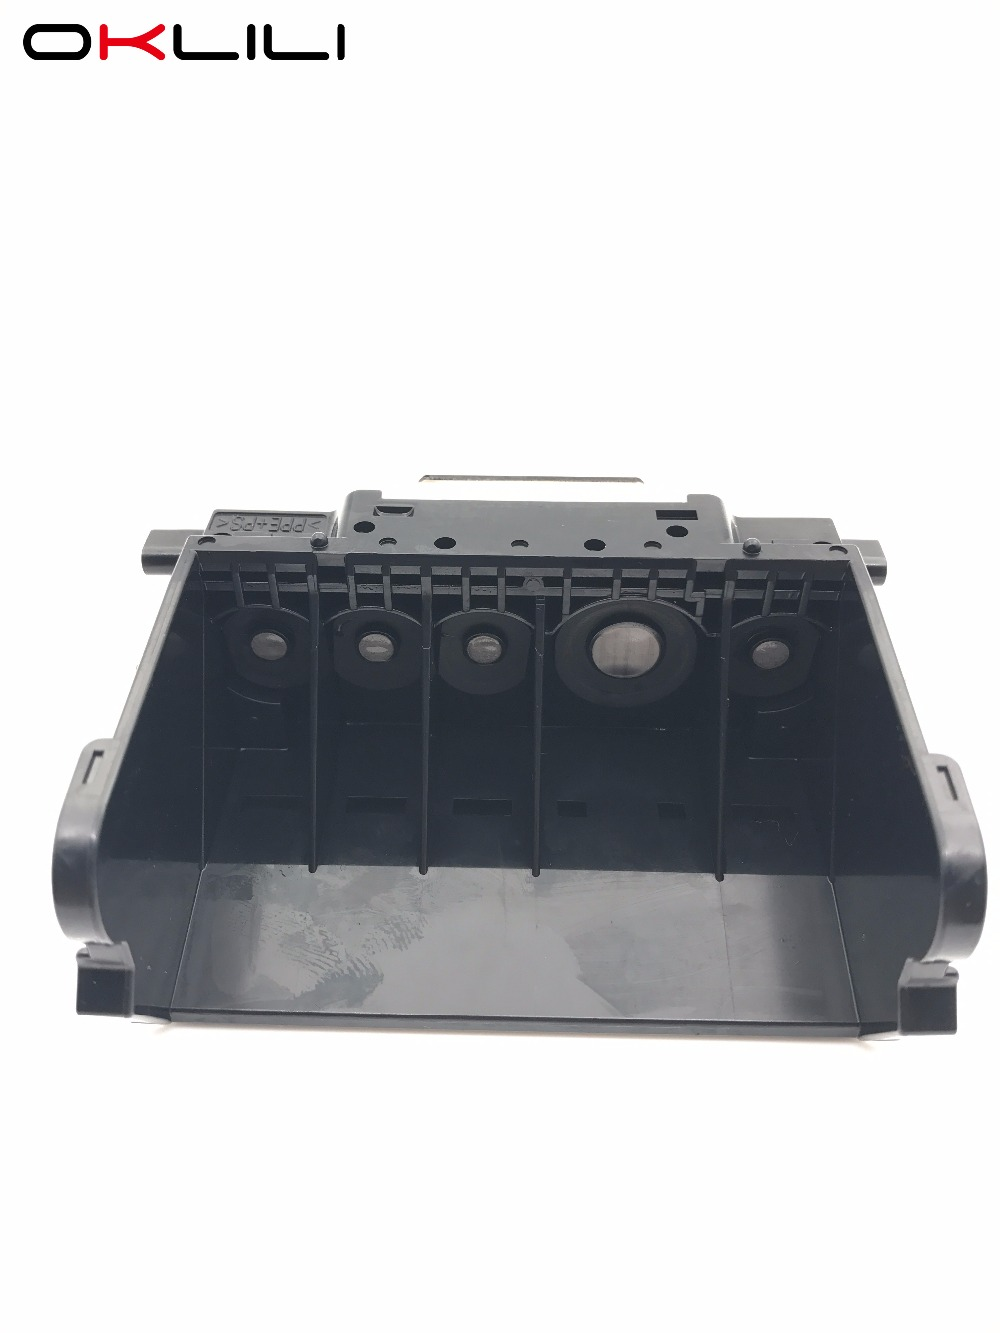 OKLILI ORIGINAL QY6-0075 QY6-0075-000 Printhead Print Head Printer Head for Canon iP5300 MP810 iP4500 MP610 MX850 qy6 0069 qy6 0069 qy60069 qy6 0069 000 printhead print head printer head remanufactured for canon mini260 mini320